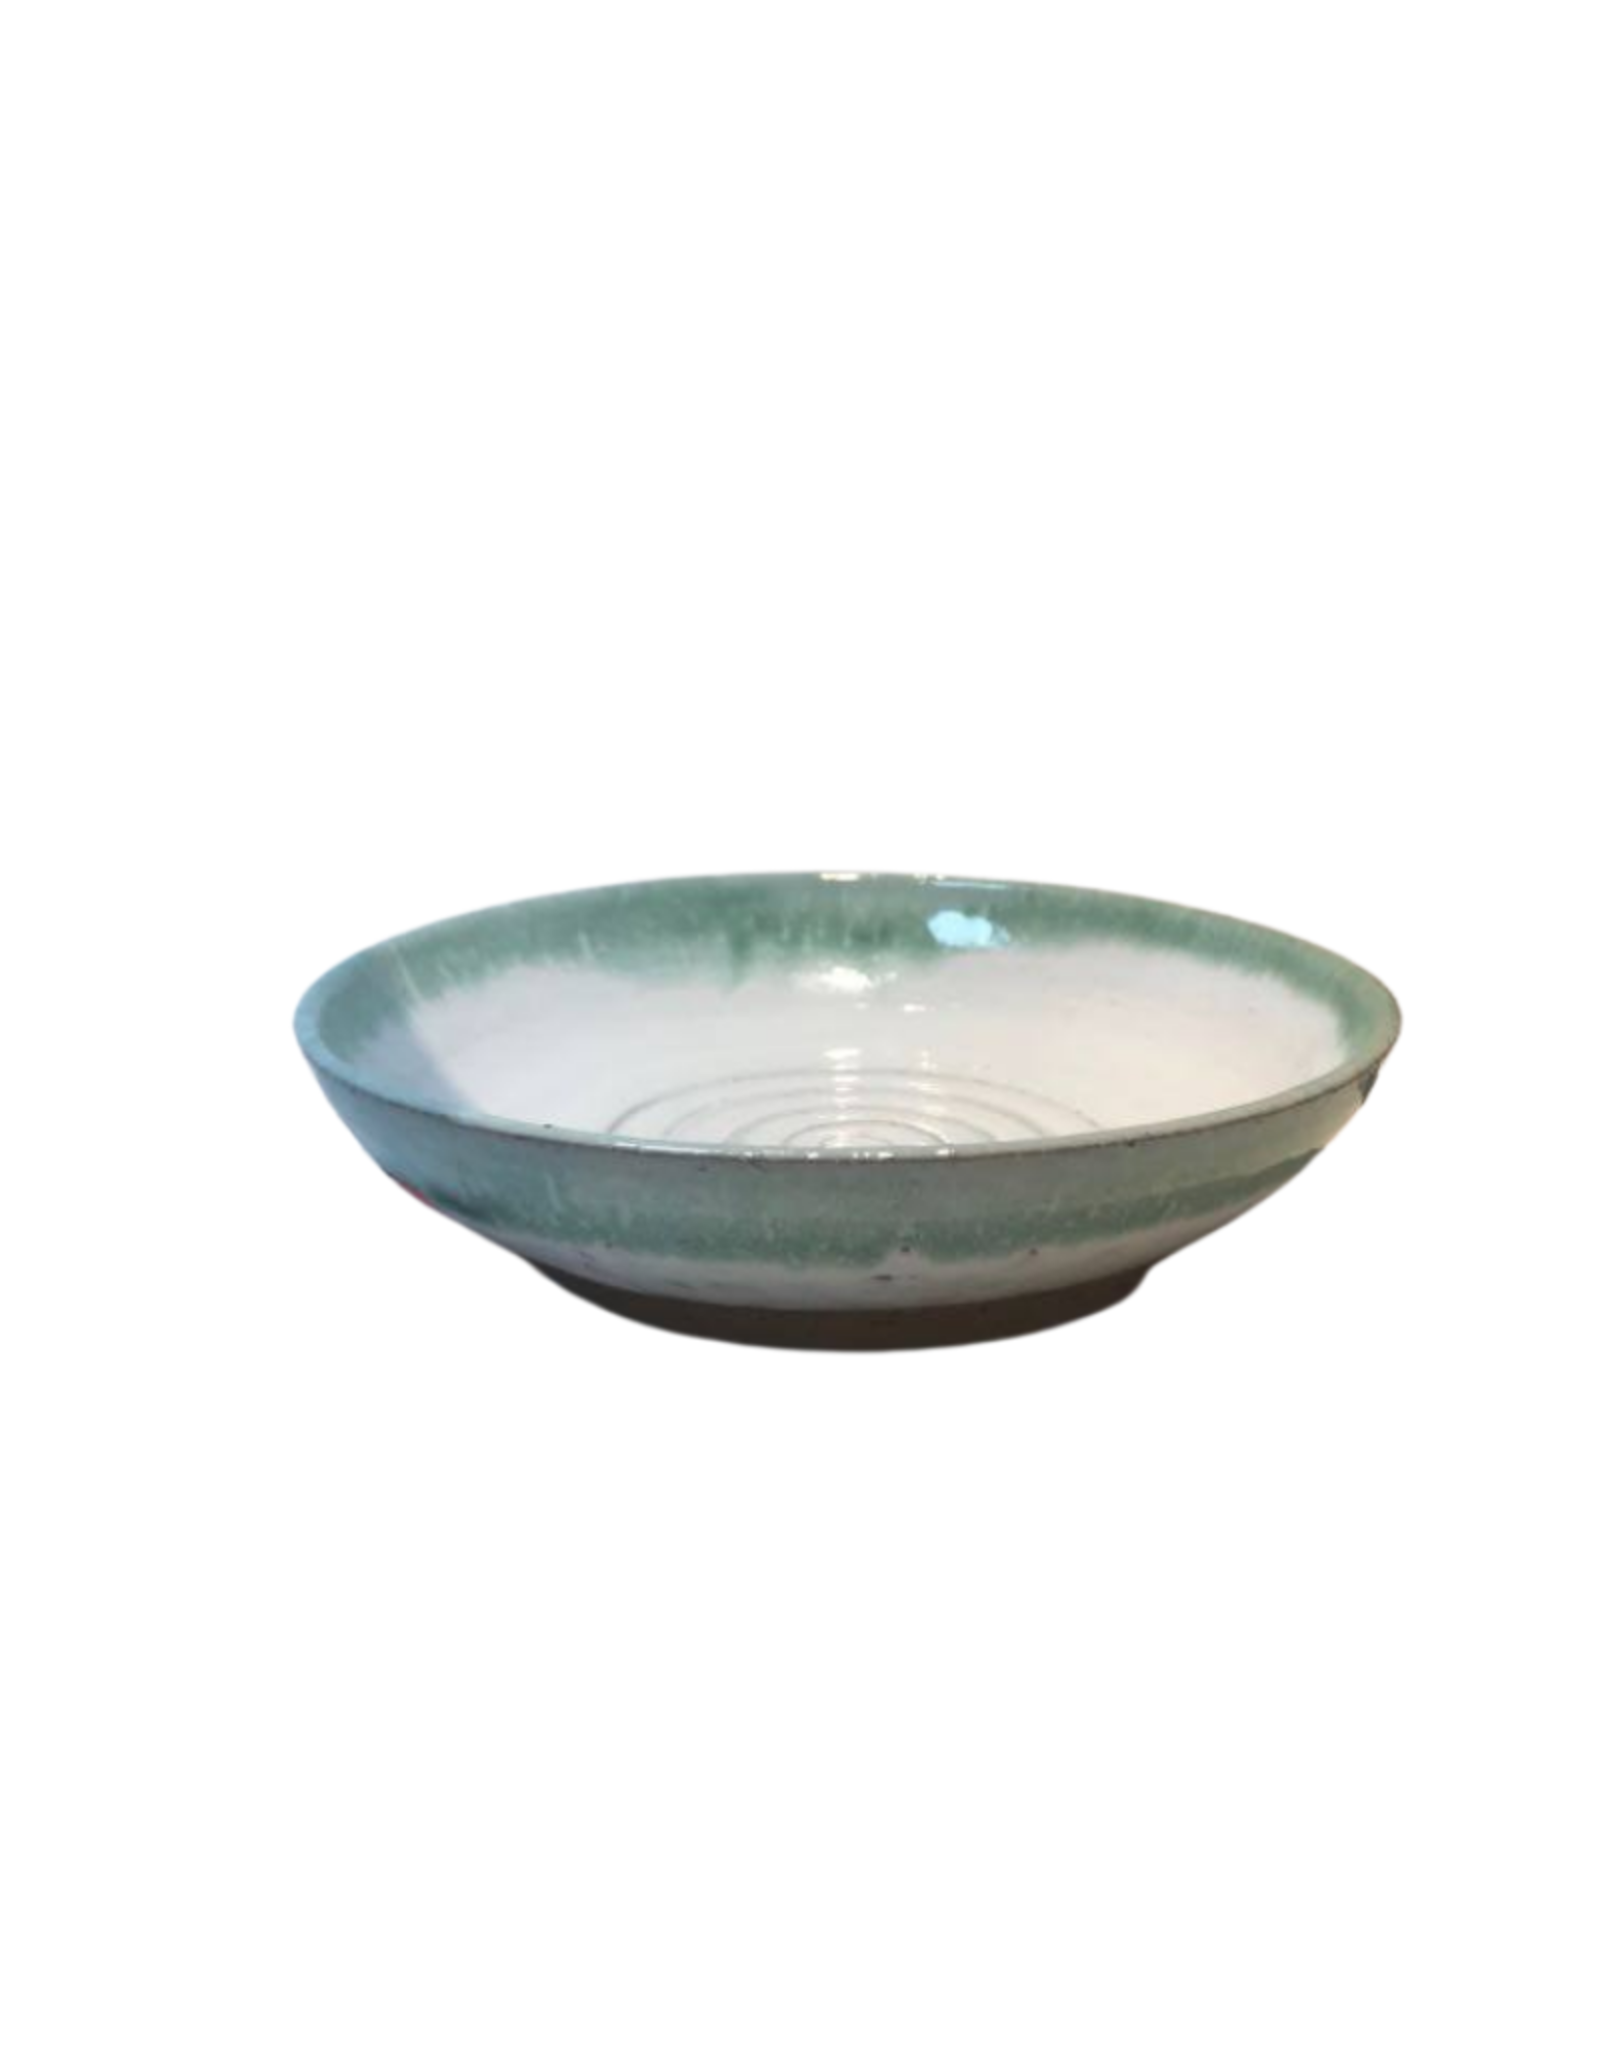 Bowl Ceramic Cream/Green Small